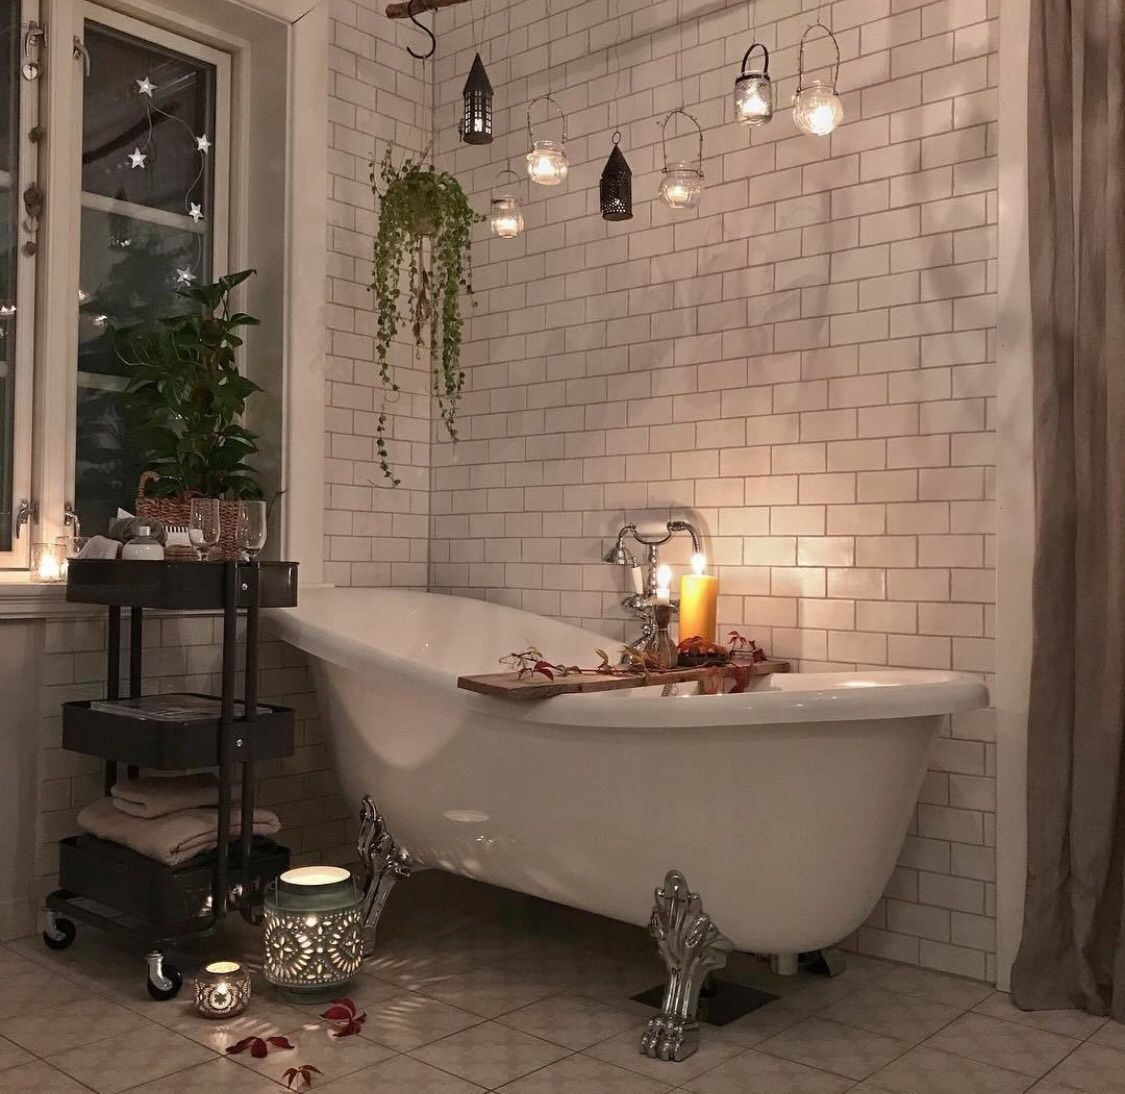 bathtub-valentine's-day-idea-selflove